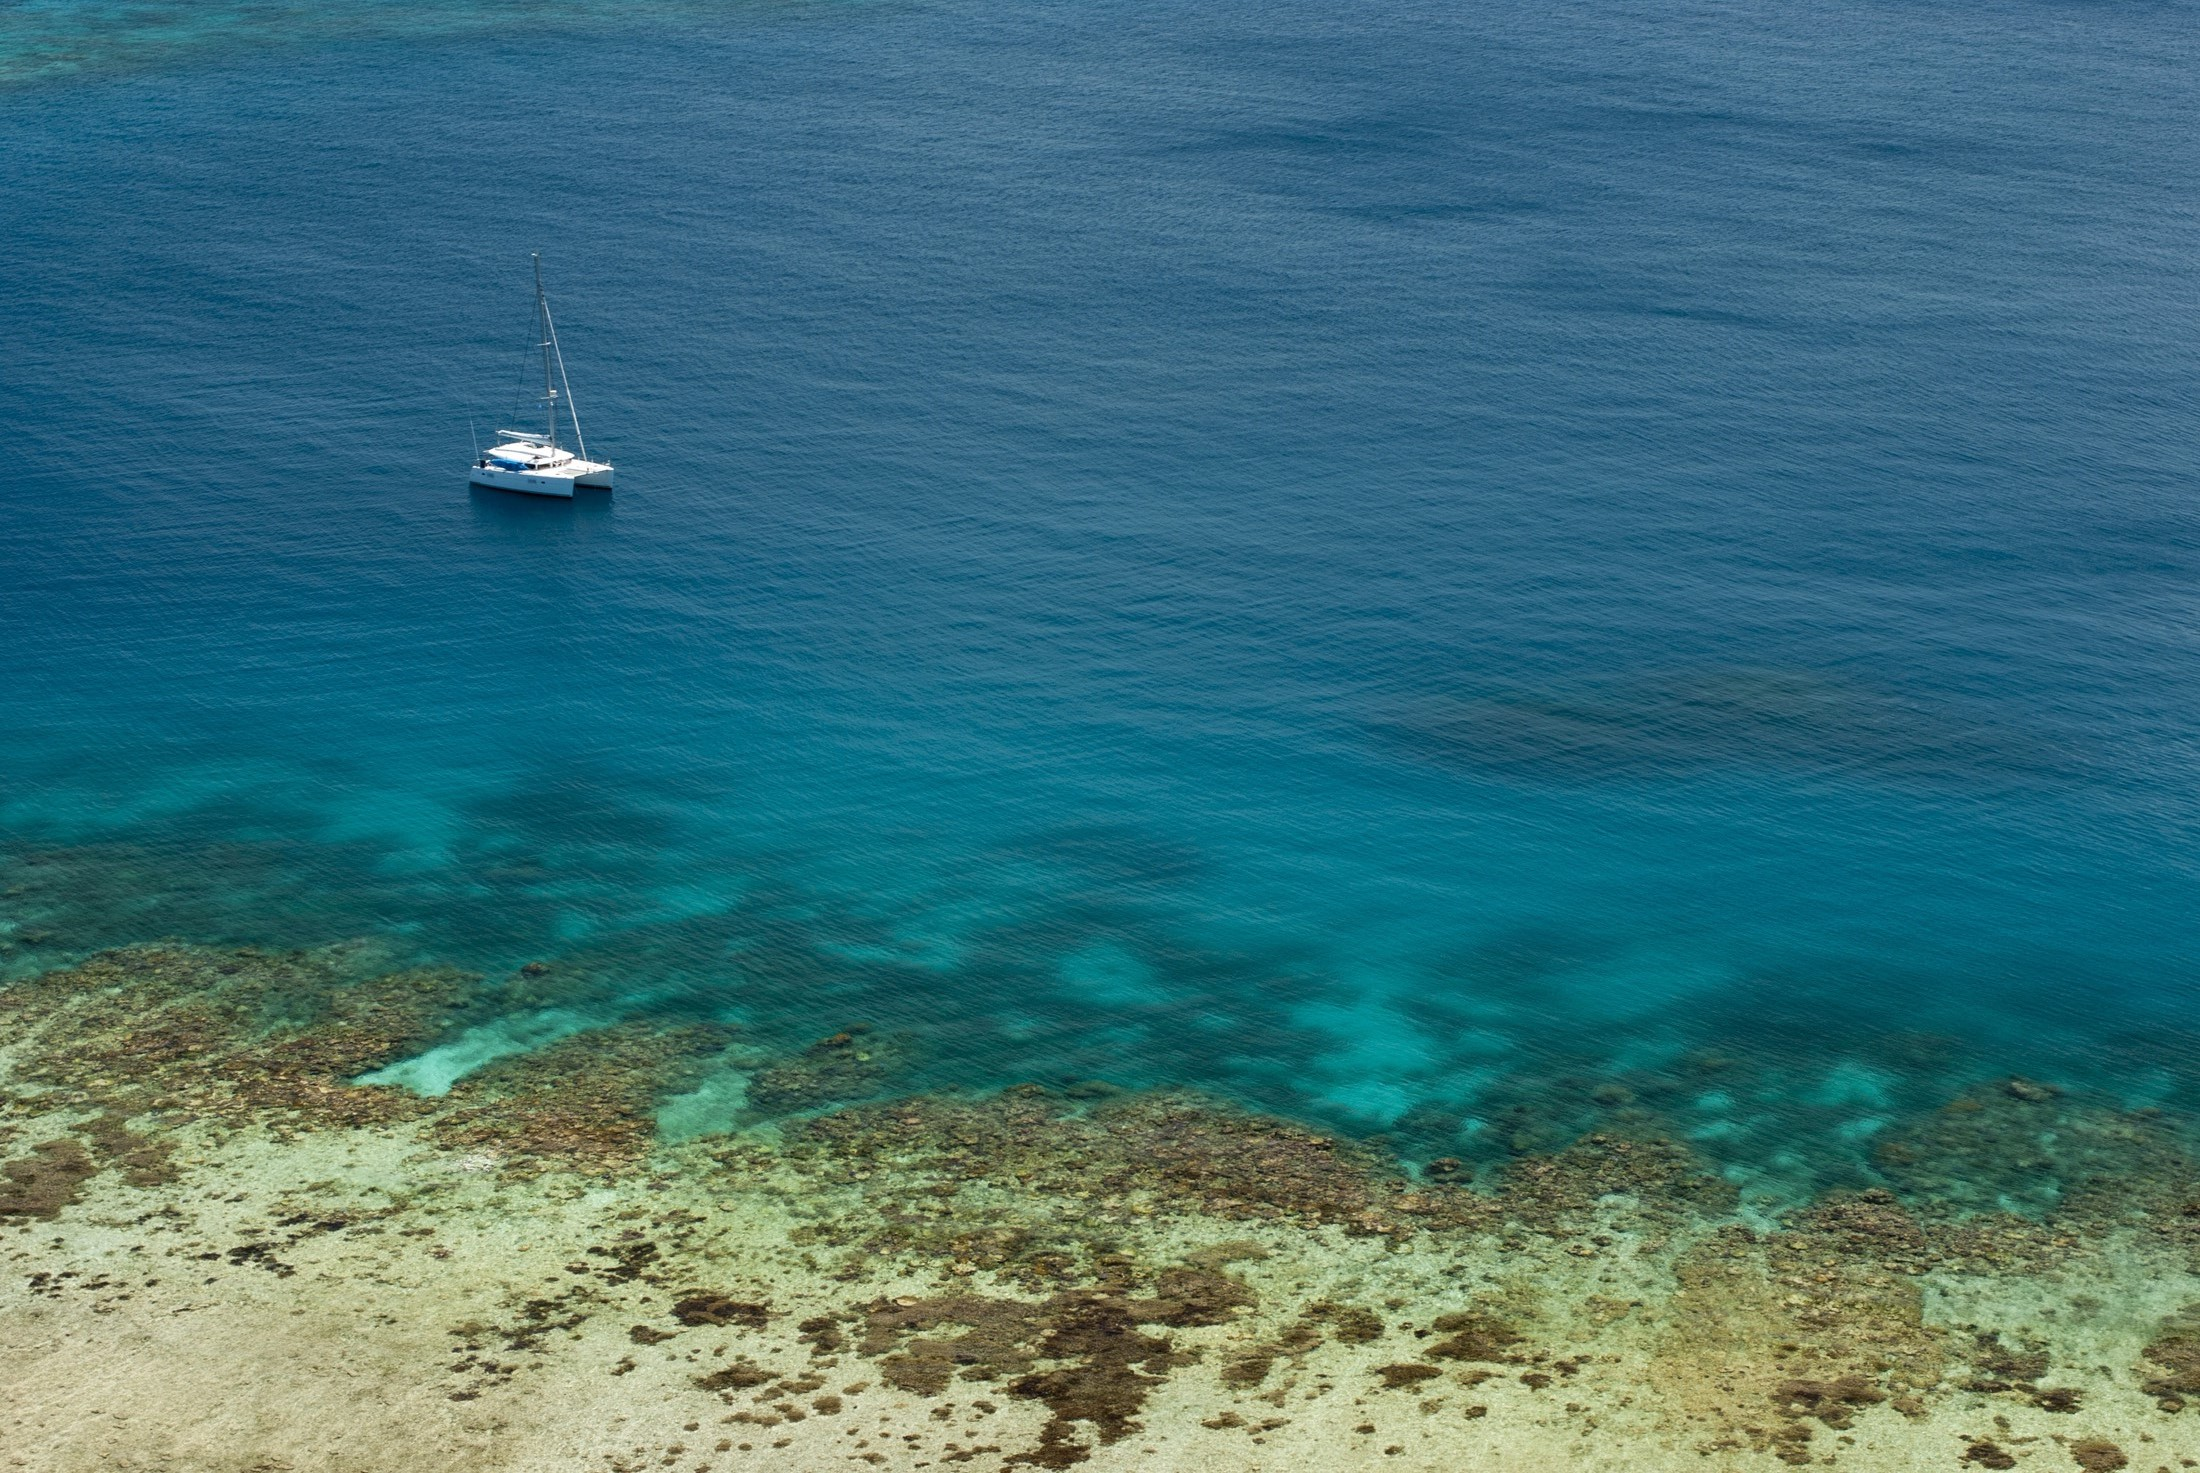 Blue ocean and crystal clear shallows off Yasawas Island, Fiji with a yacht passing close to shore and copyspace